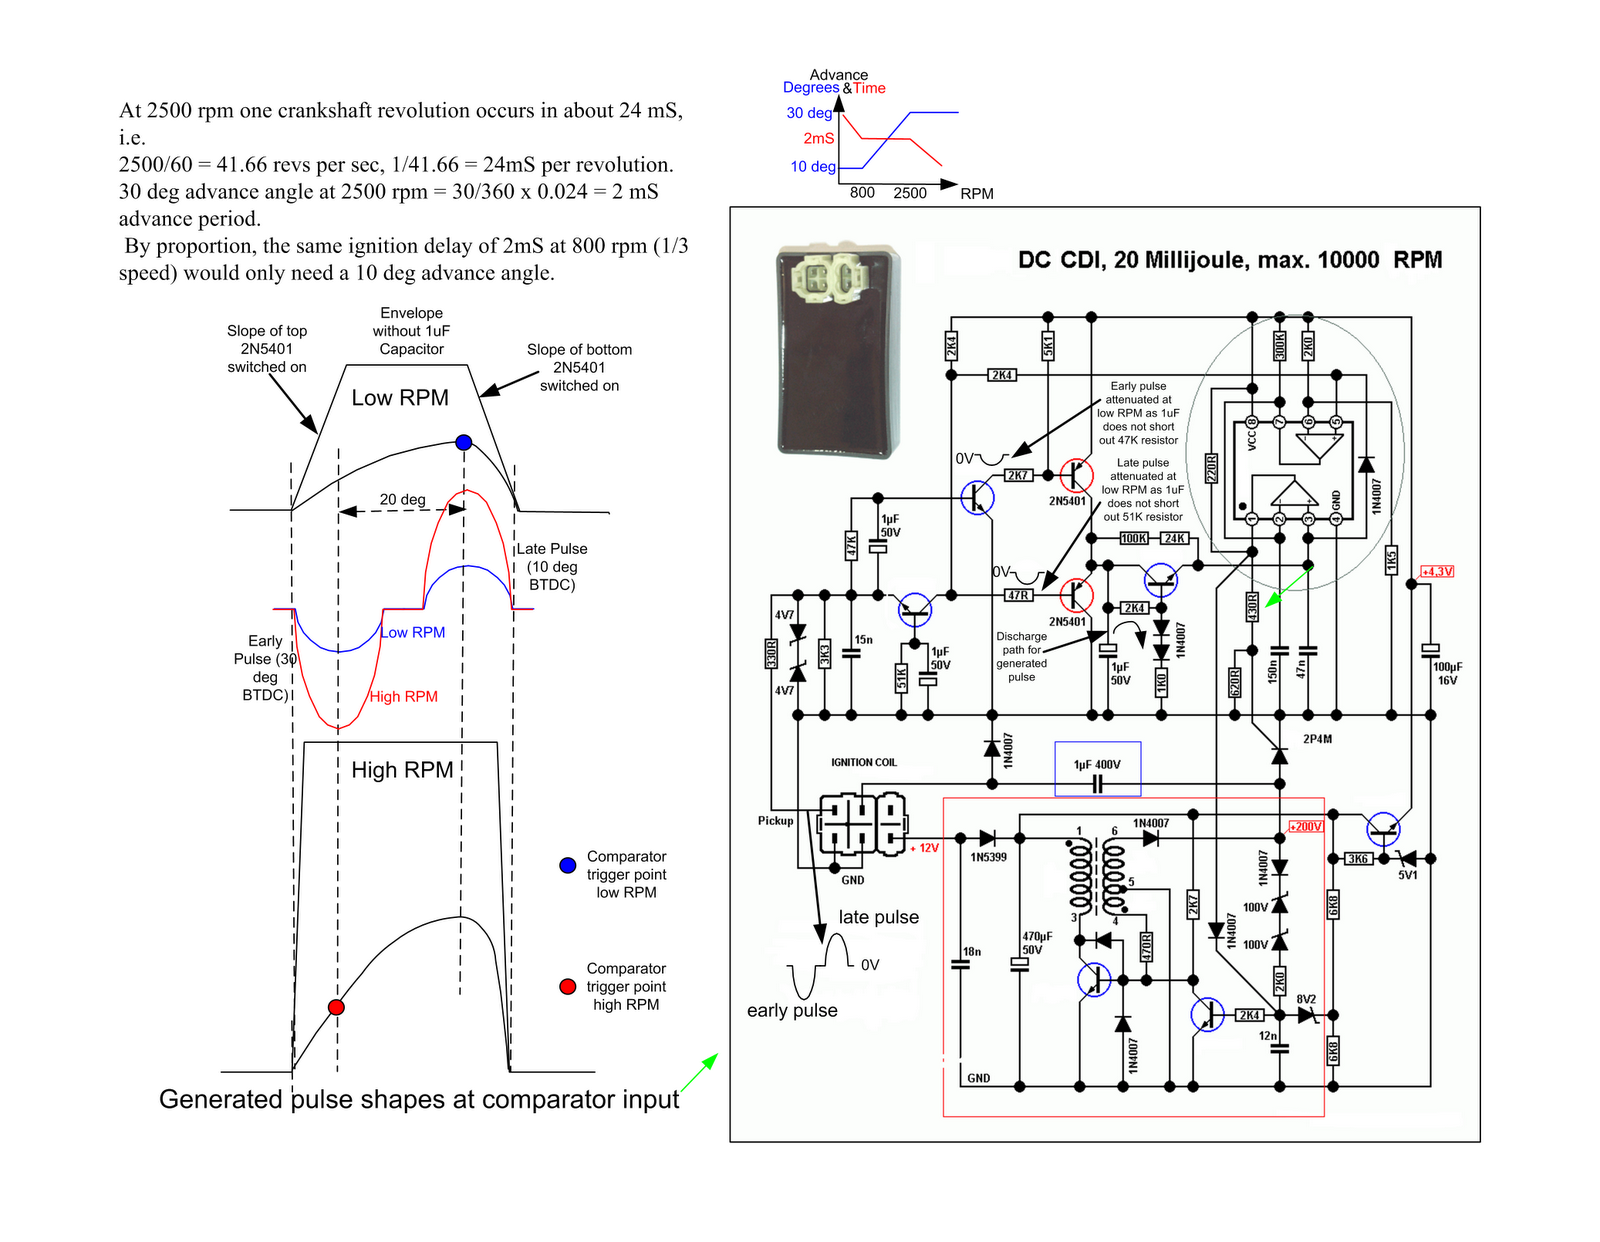 cdi wiring diagram cdi image wiring diagram 6 pin cdi wiring diagram 6 trailer wiring diagram for auto on cdi wiring diagram